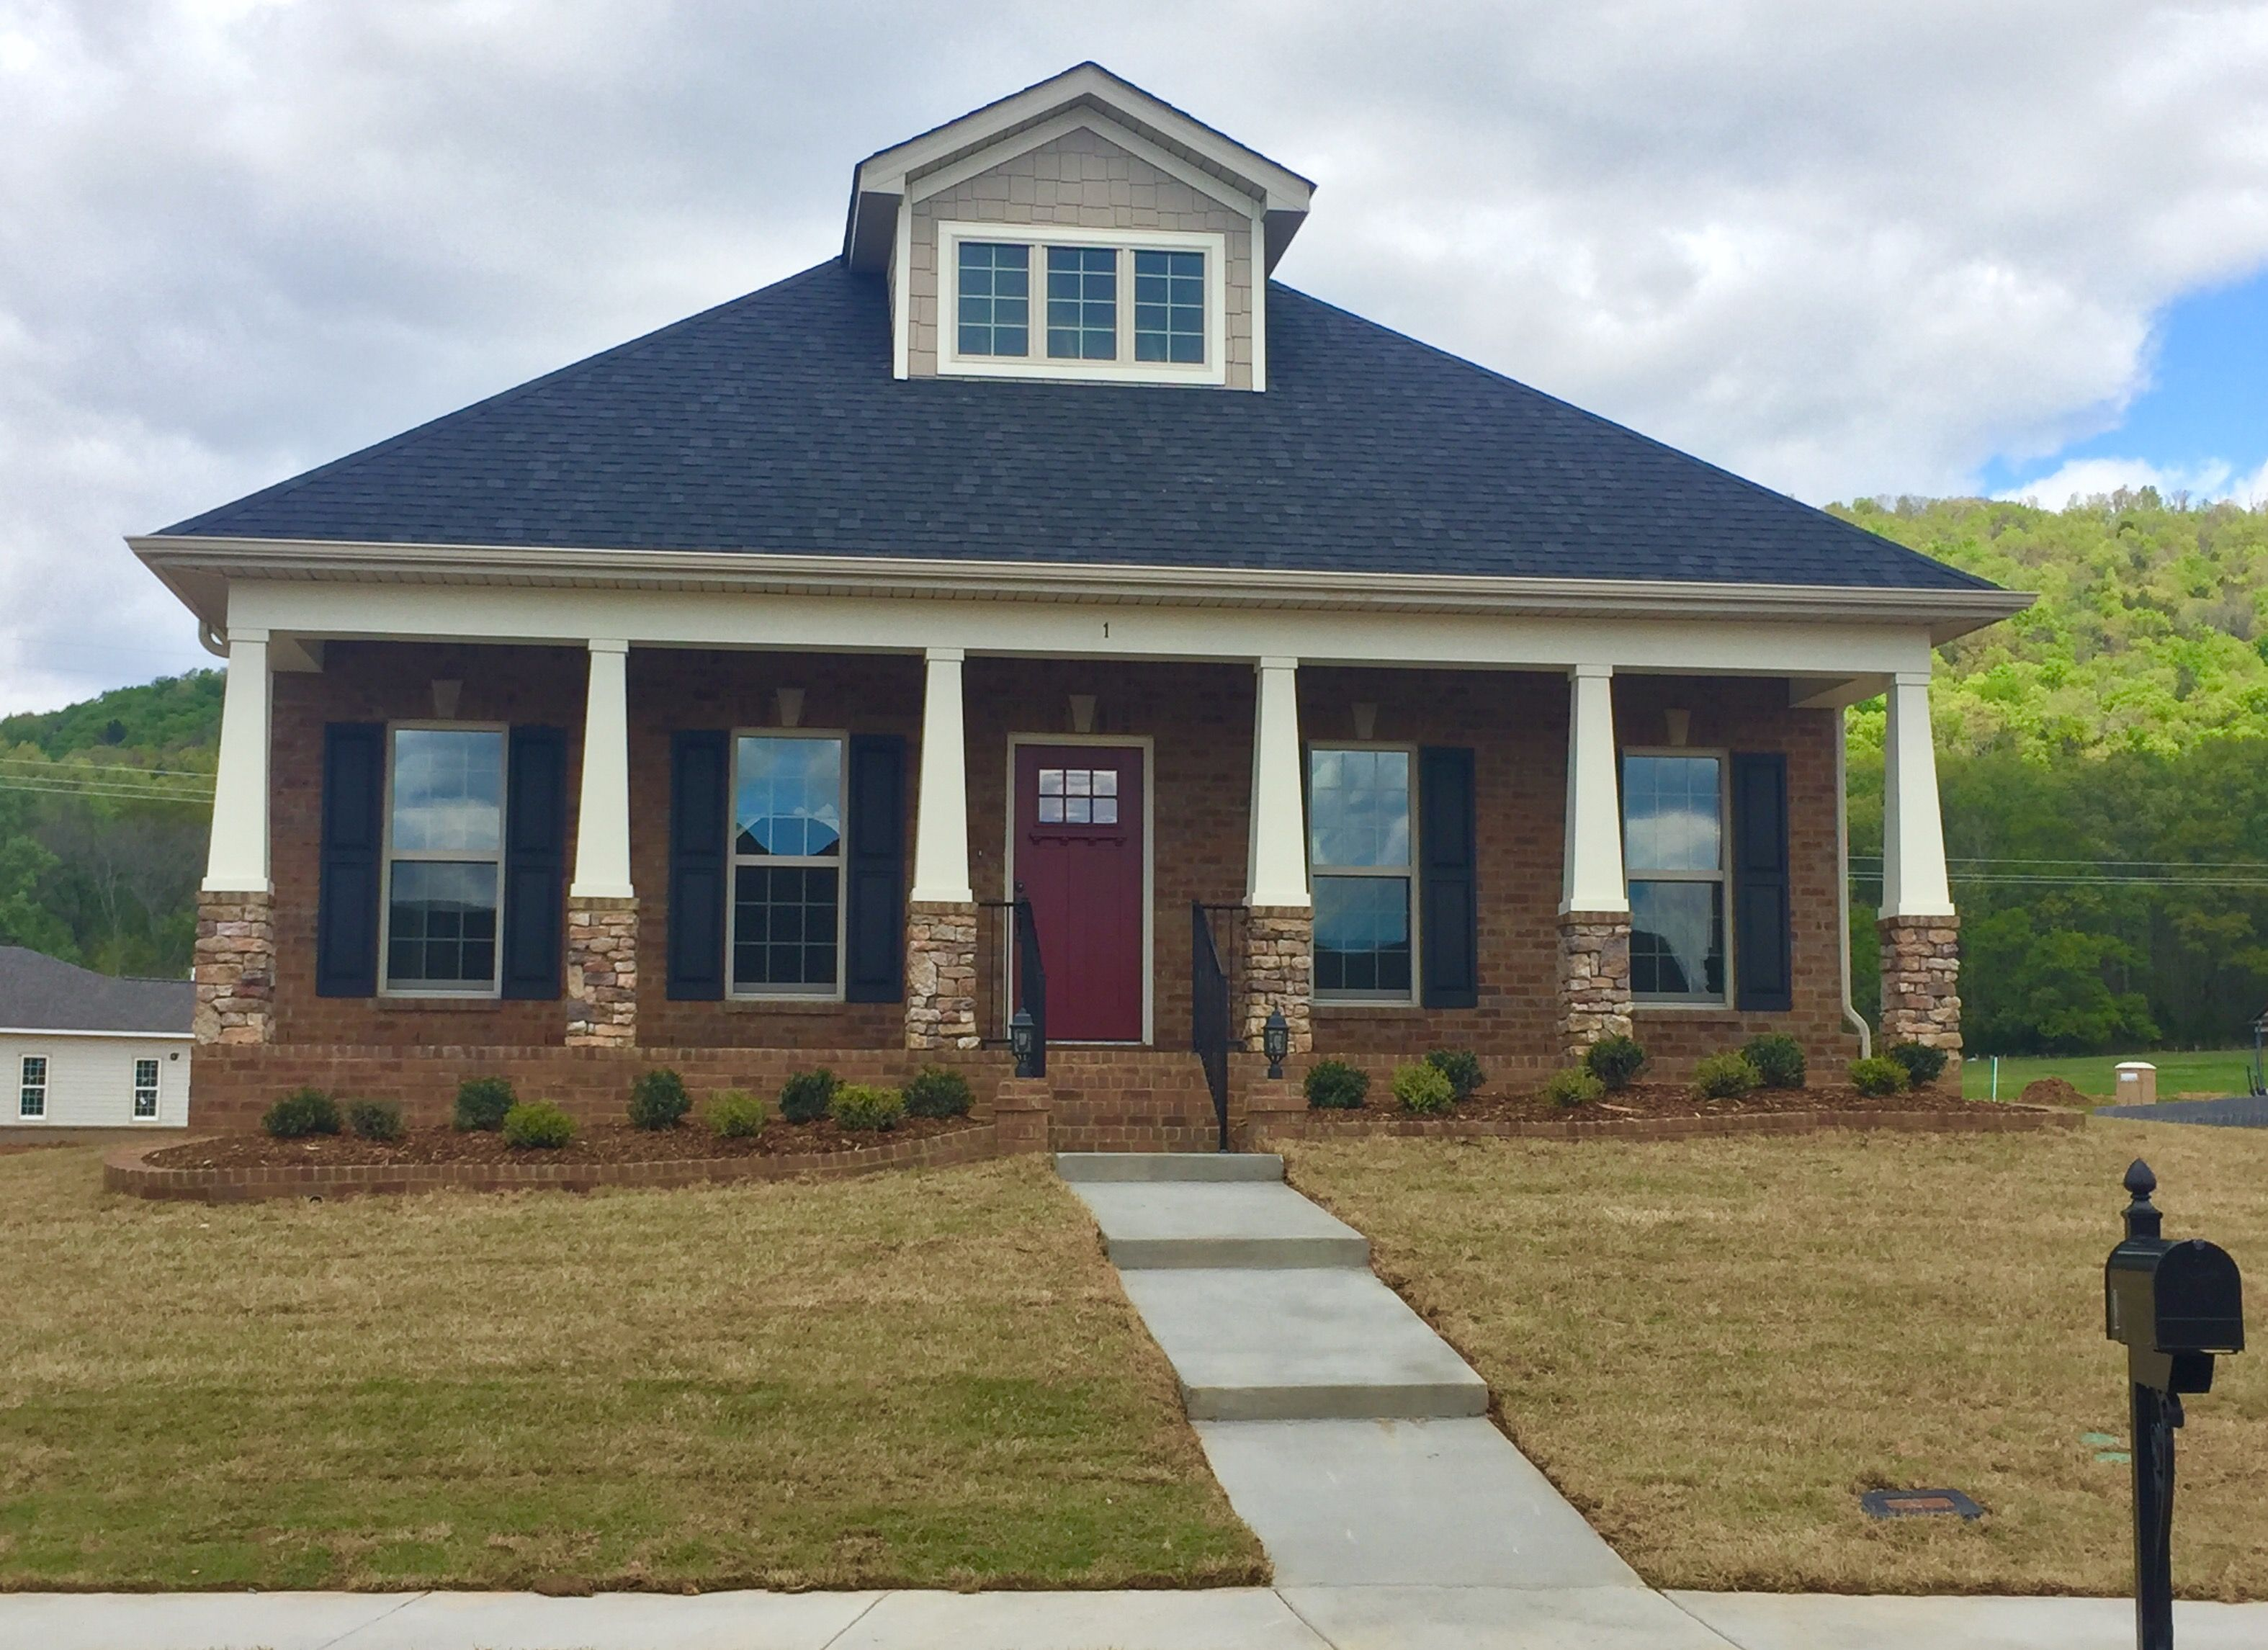 Here is the Completely New Picture Of New Patio Homes for Sale In Columbia Sc